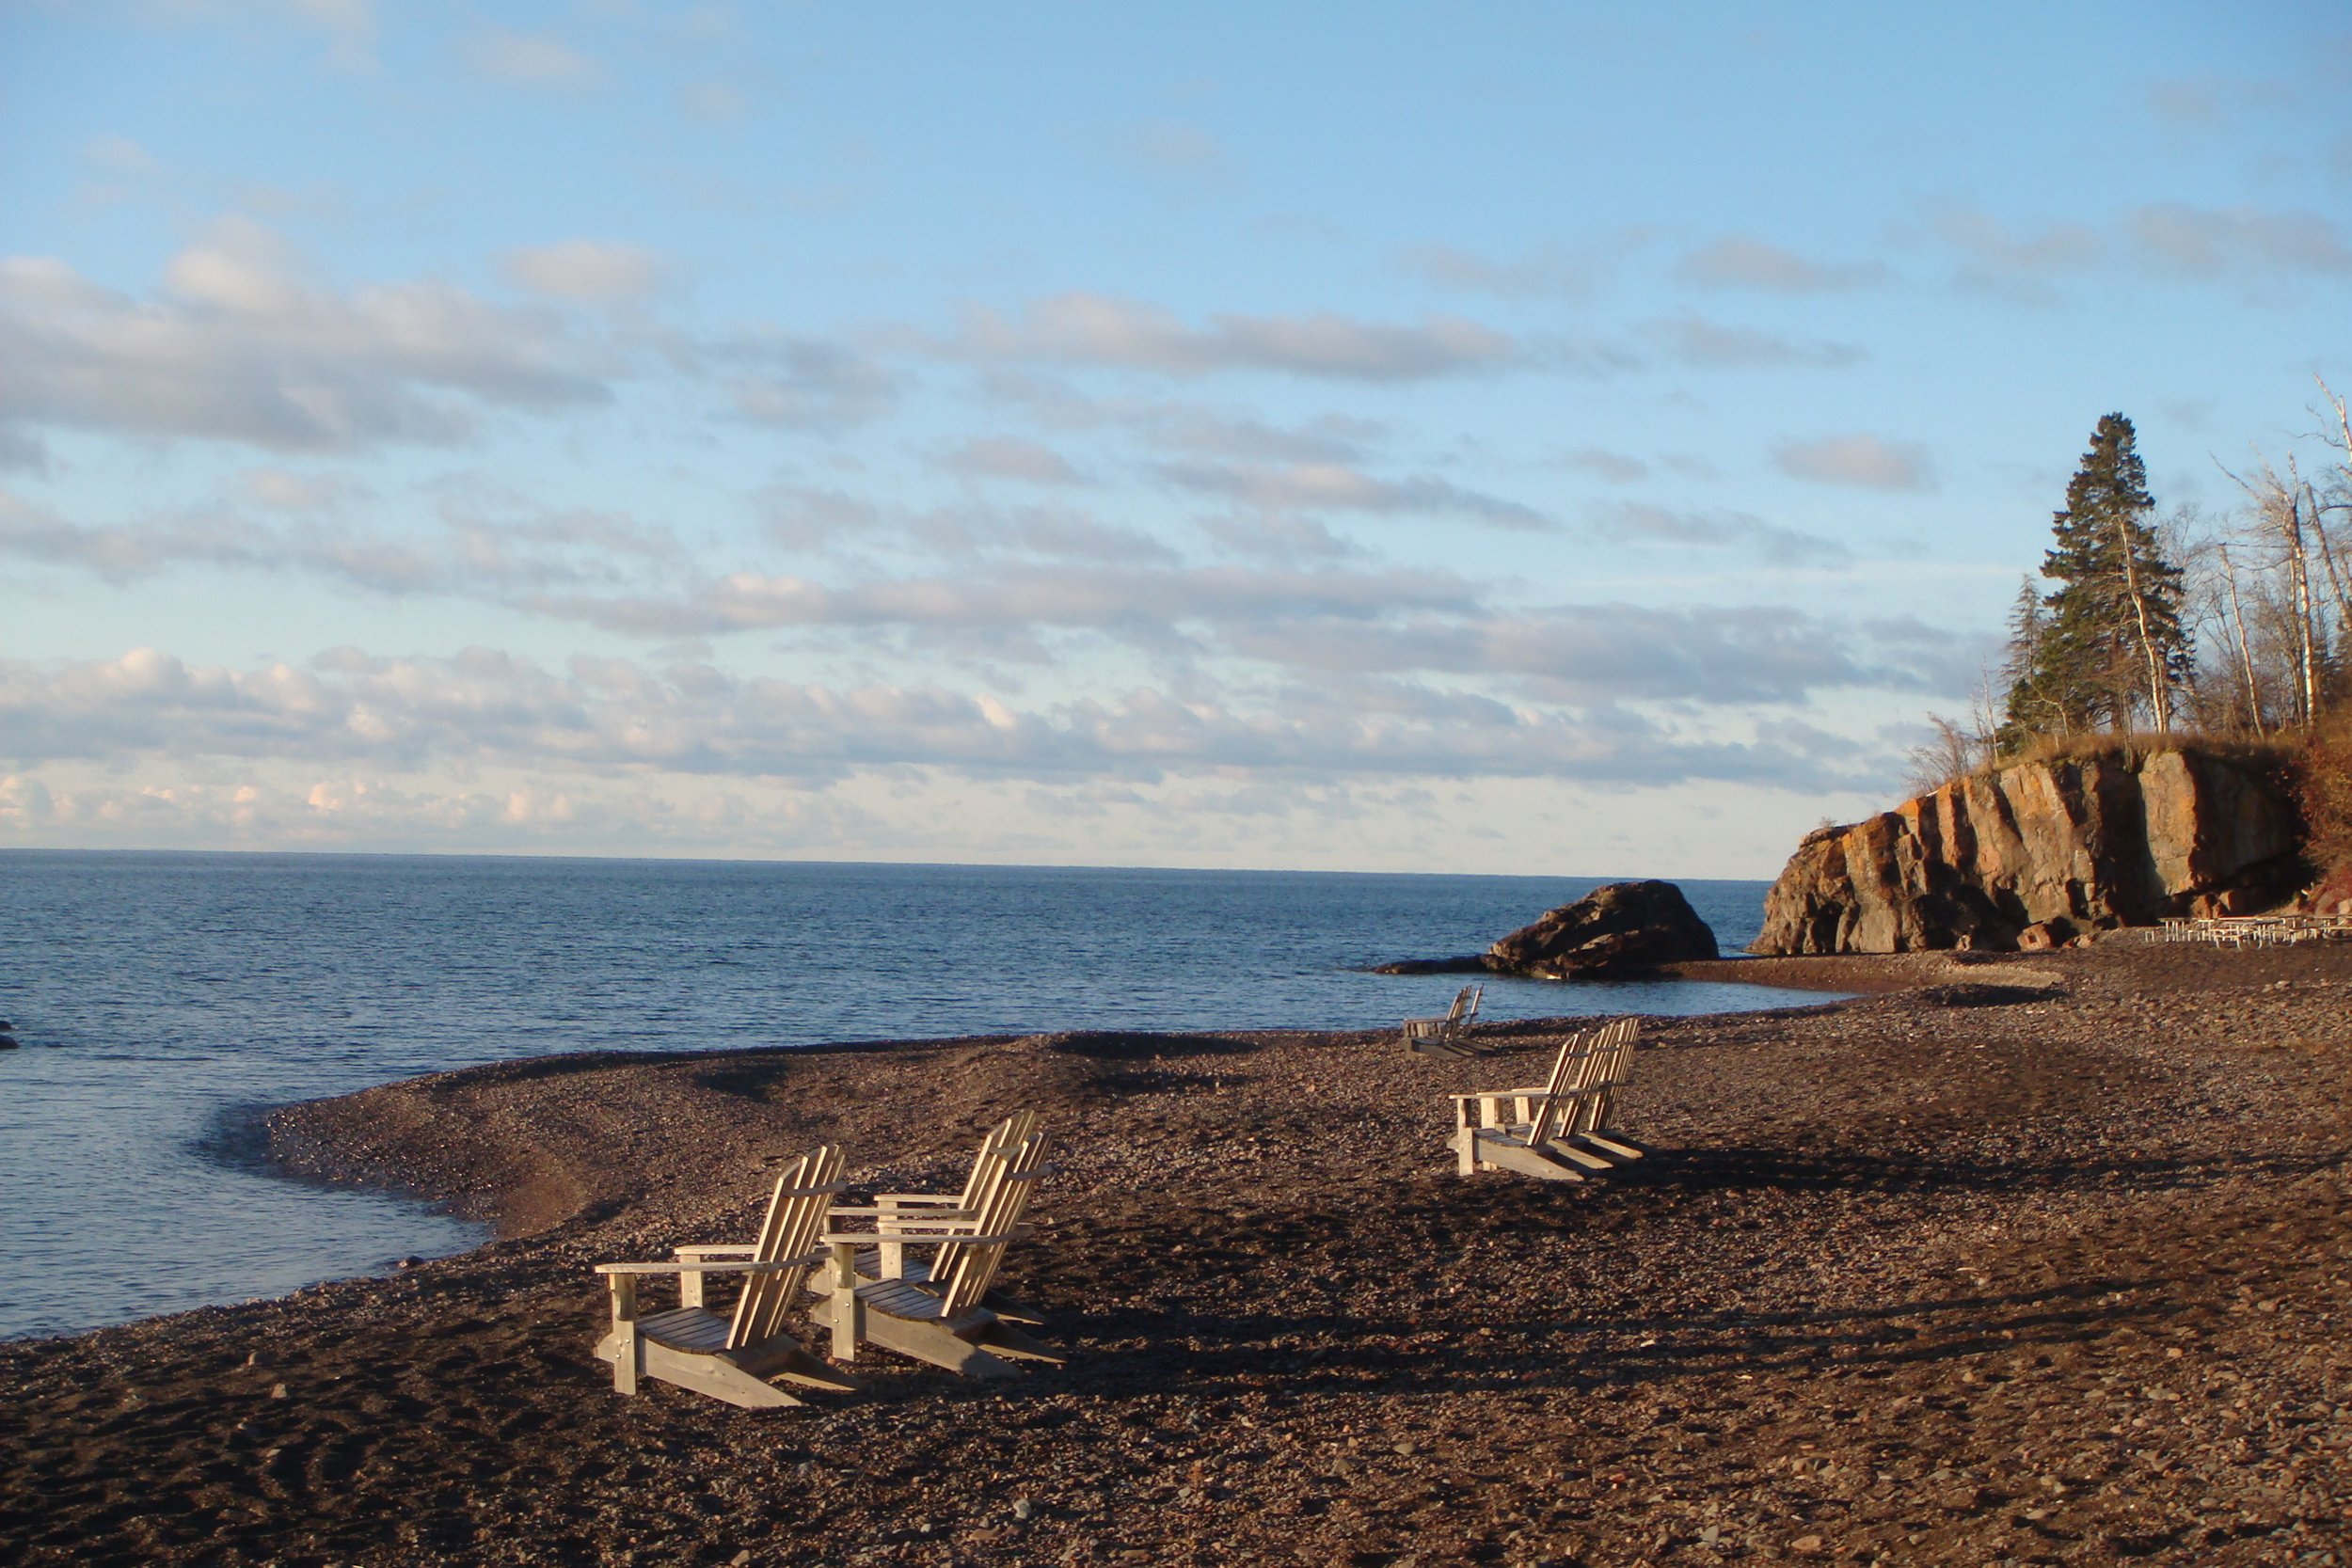 The Superior HIking Trail occasionally descends to the shores of Lake Superior.